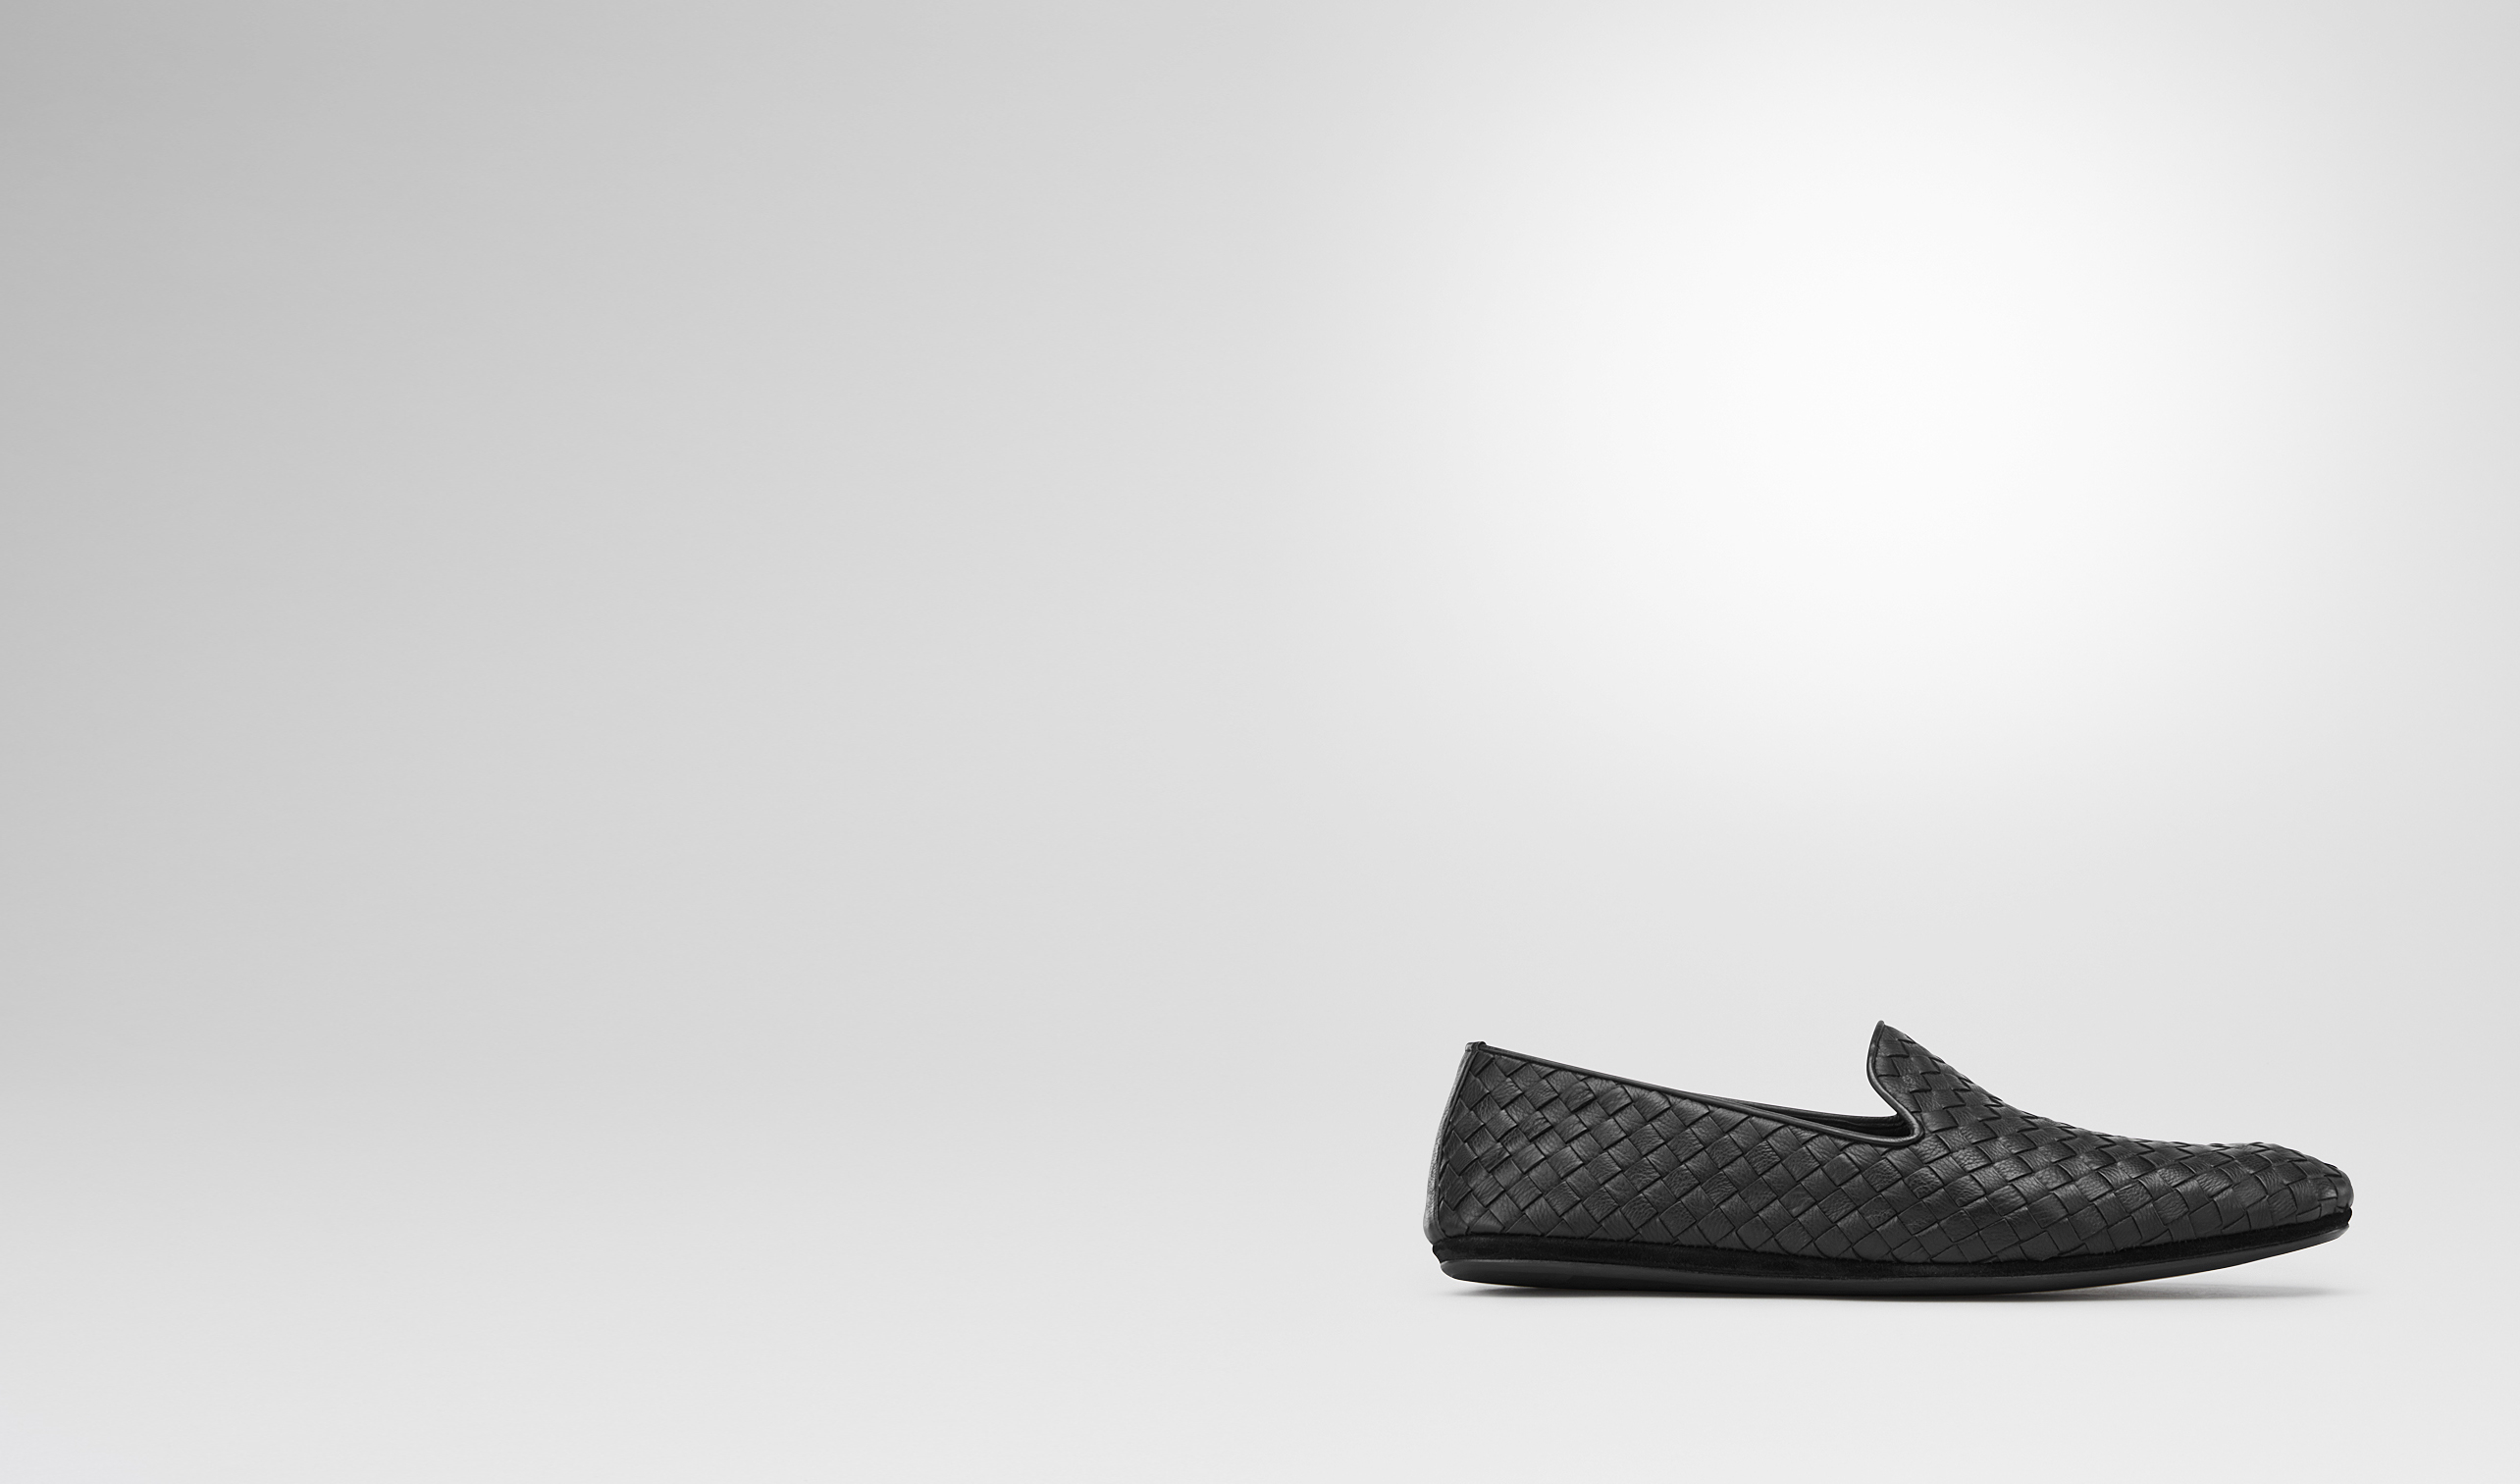 BOTTEGA VENETA Mokassins und Slipper U FIANDRA SLIPPER AUS INTRECCIATO KALBSLEDER IN NERO pl